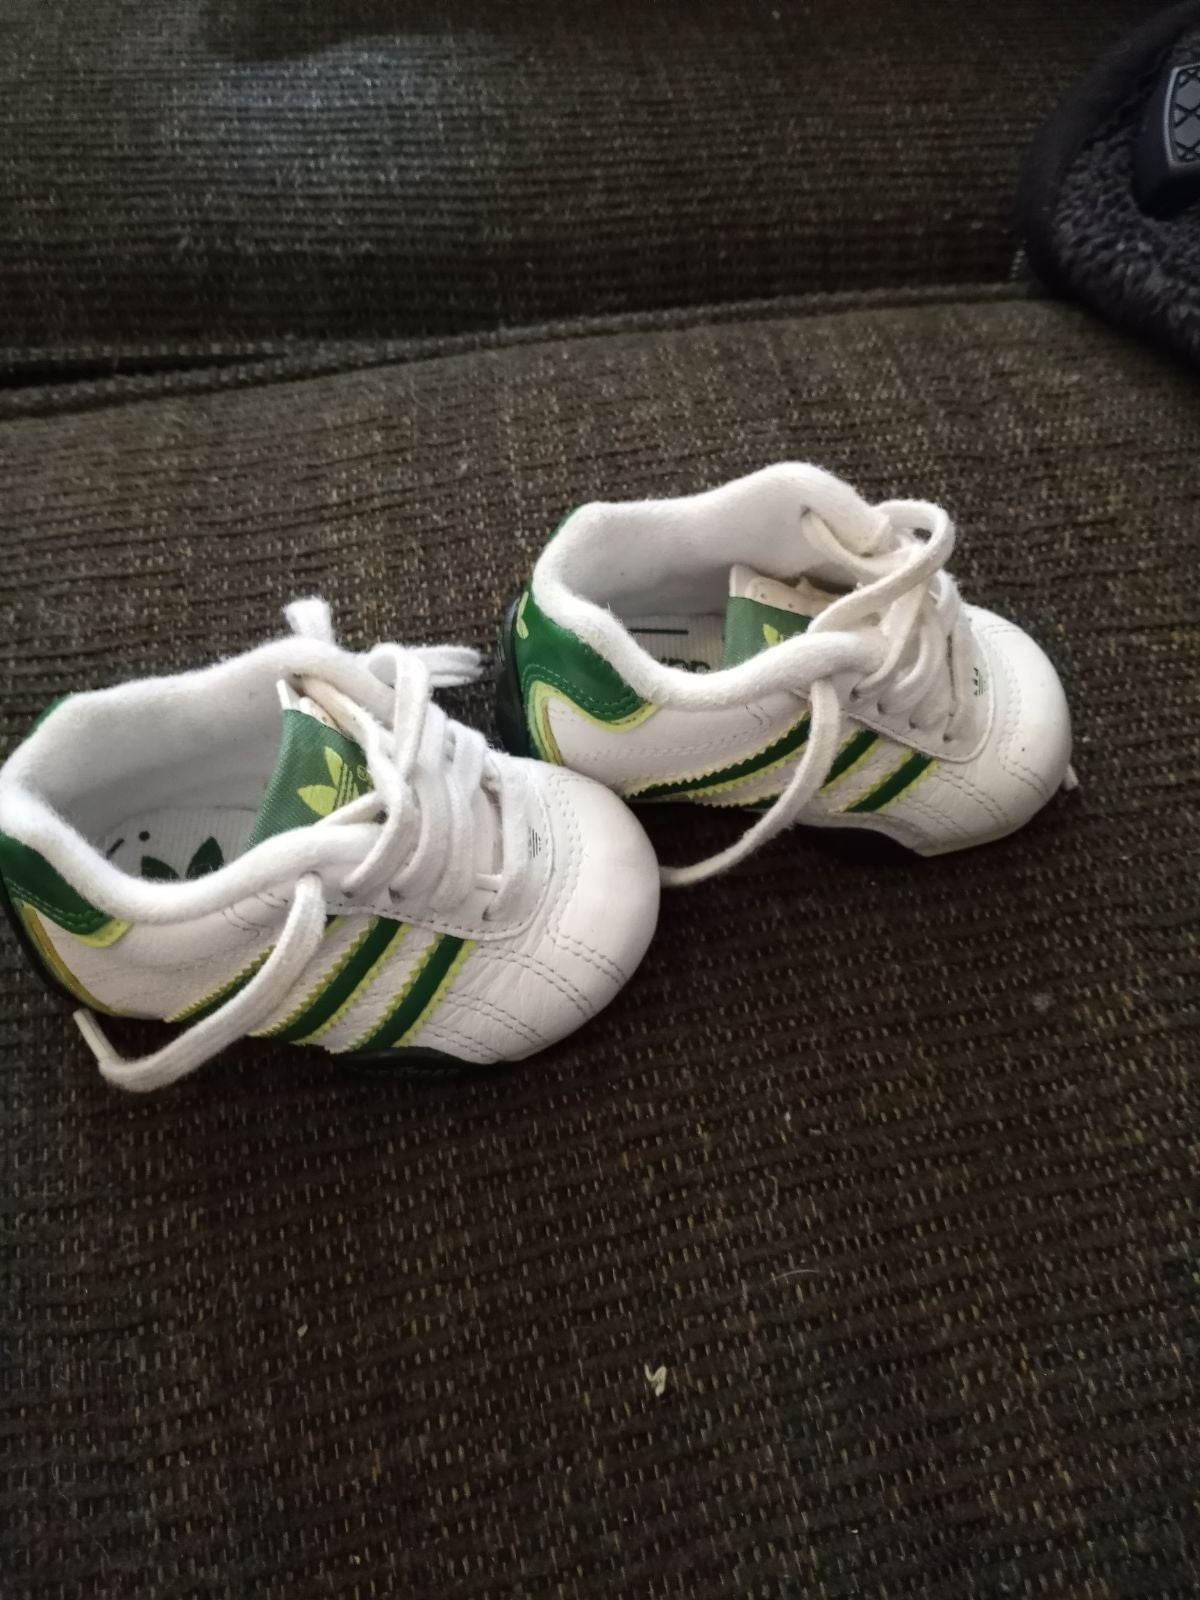 Adidas 2c shoes infant